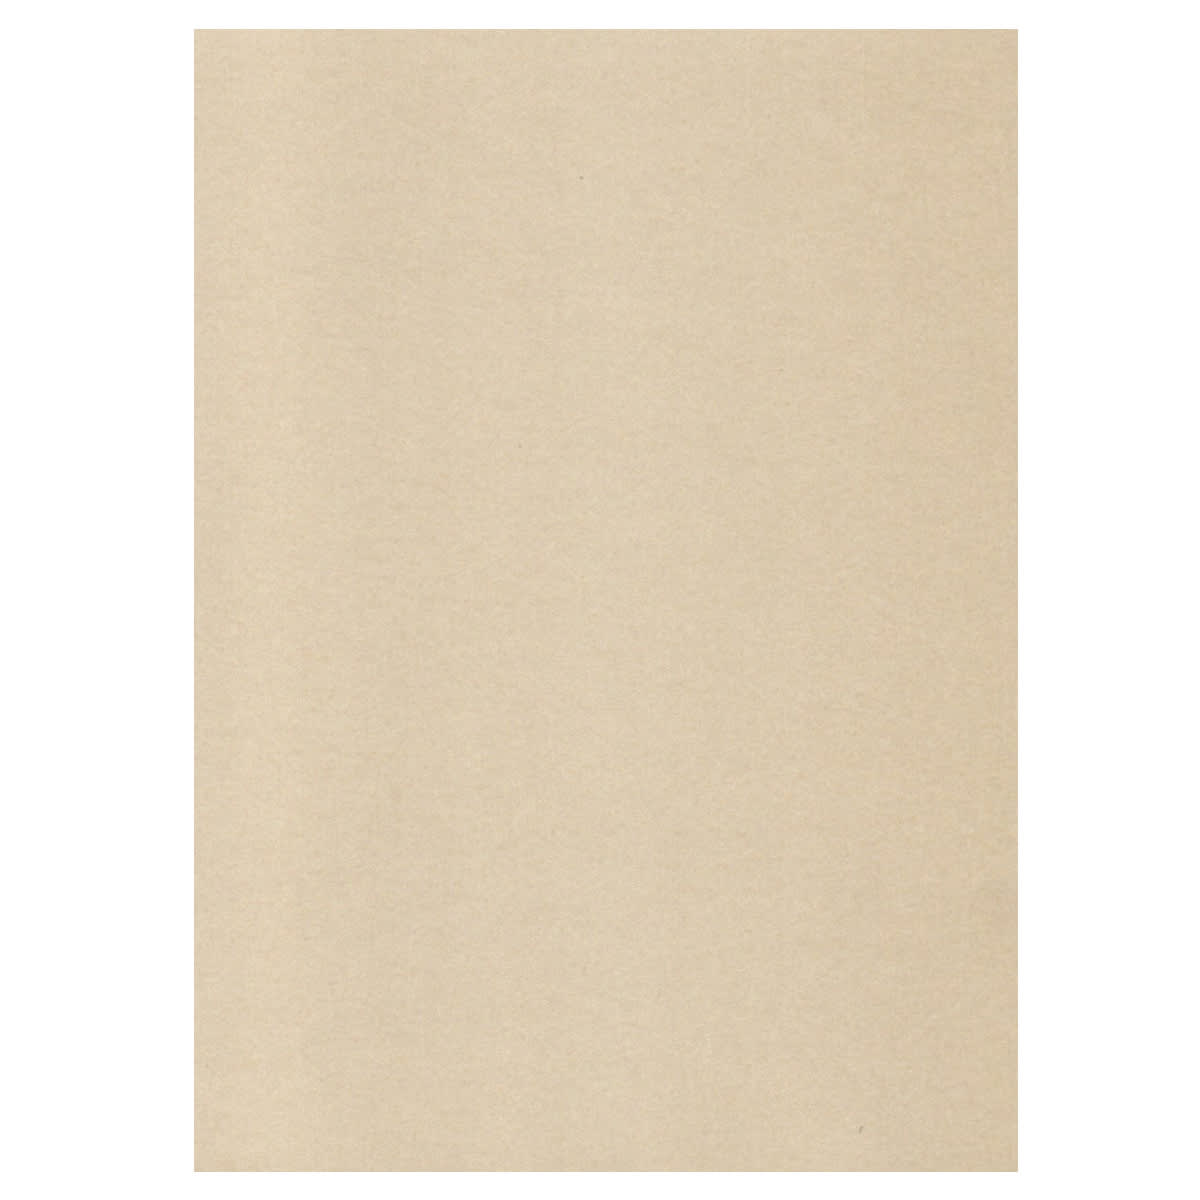 A4 PEARLESCENT IVORY PAPER (Pack of 10 Sheets)